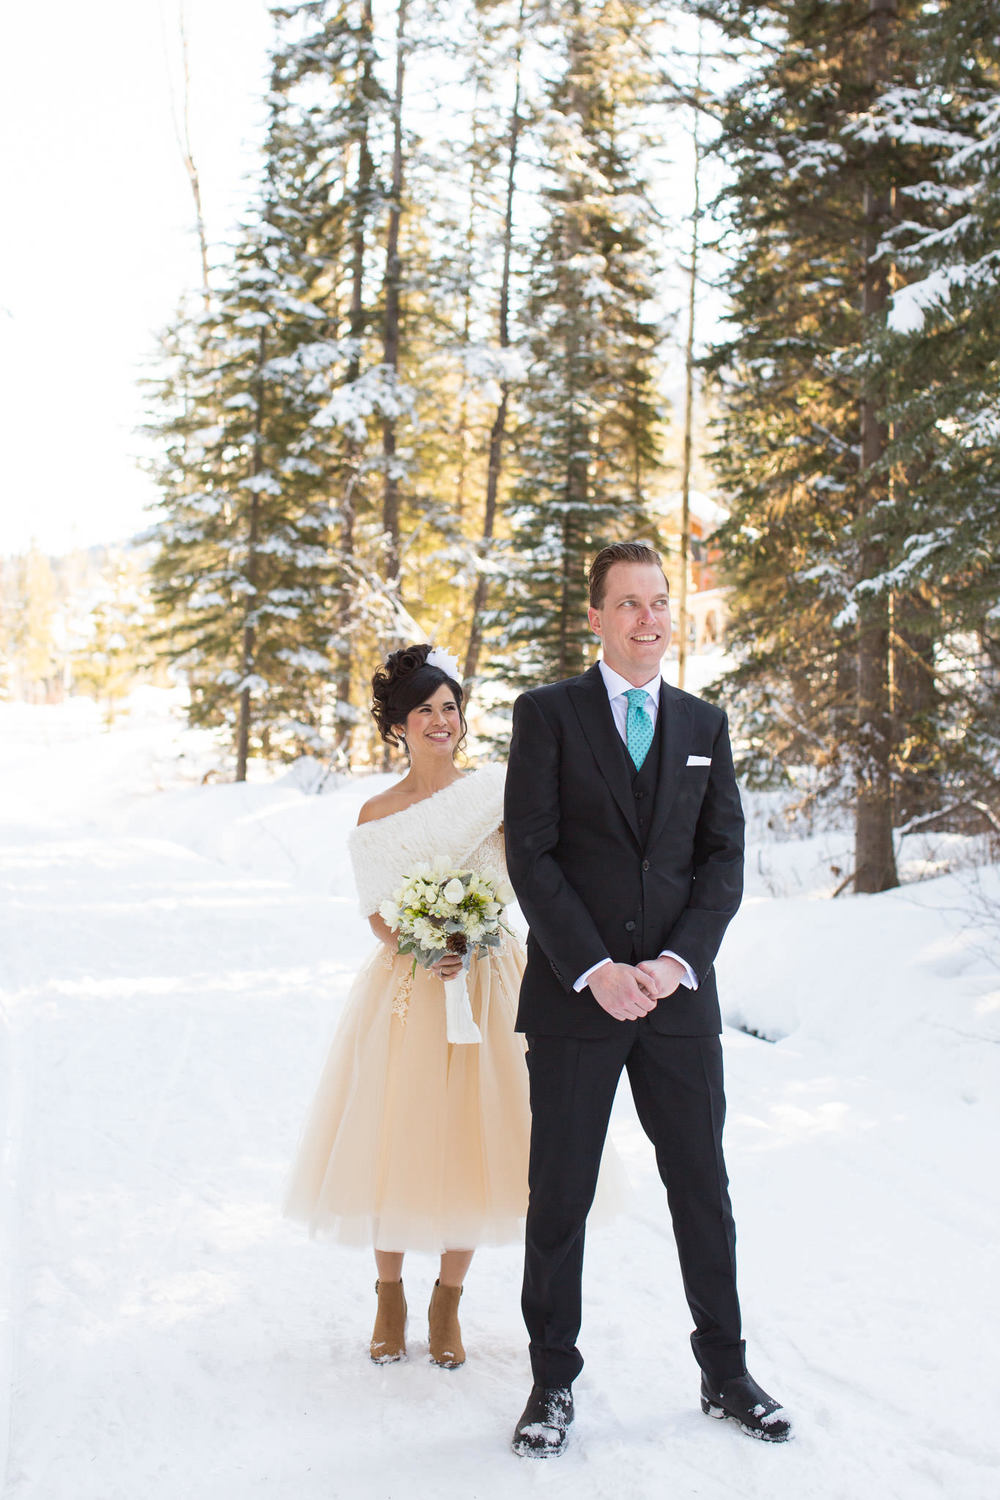 BC-destination-wedding-photographer-0009.JPG